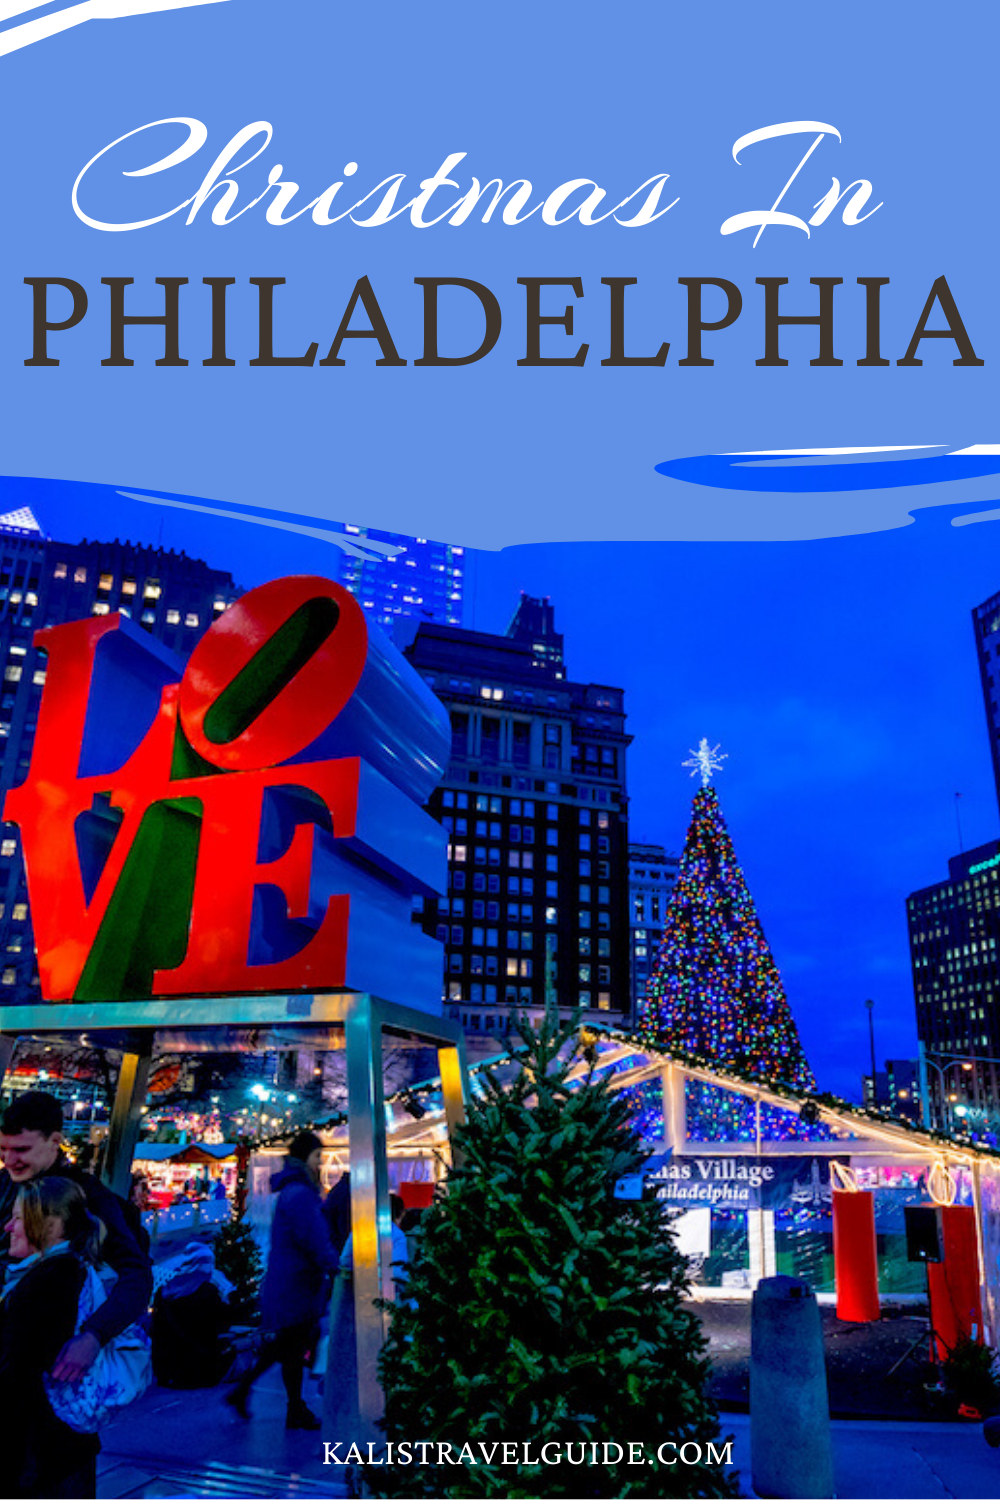 Christmas Time In Philadelphia 2020 Feel The Magic of Philadelphia at Christmas Time in 2020 | Travel